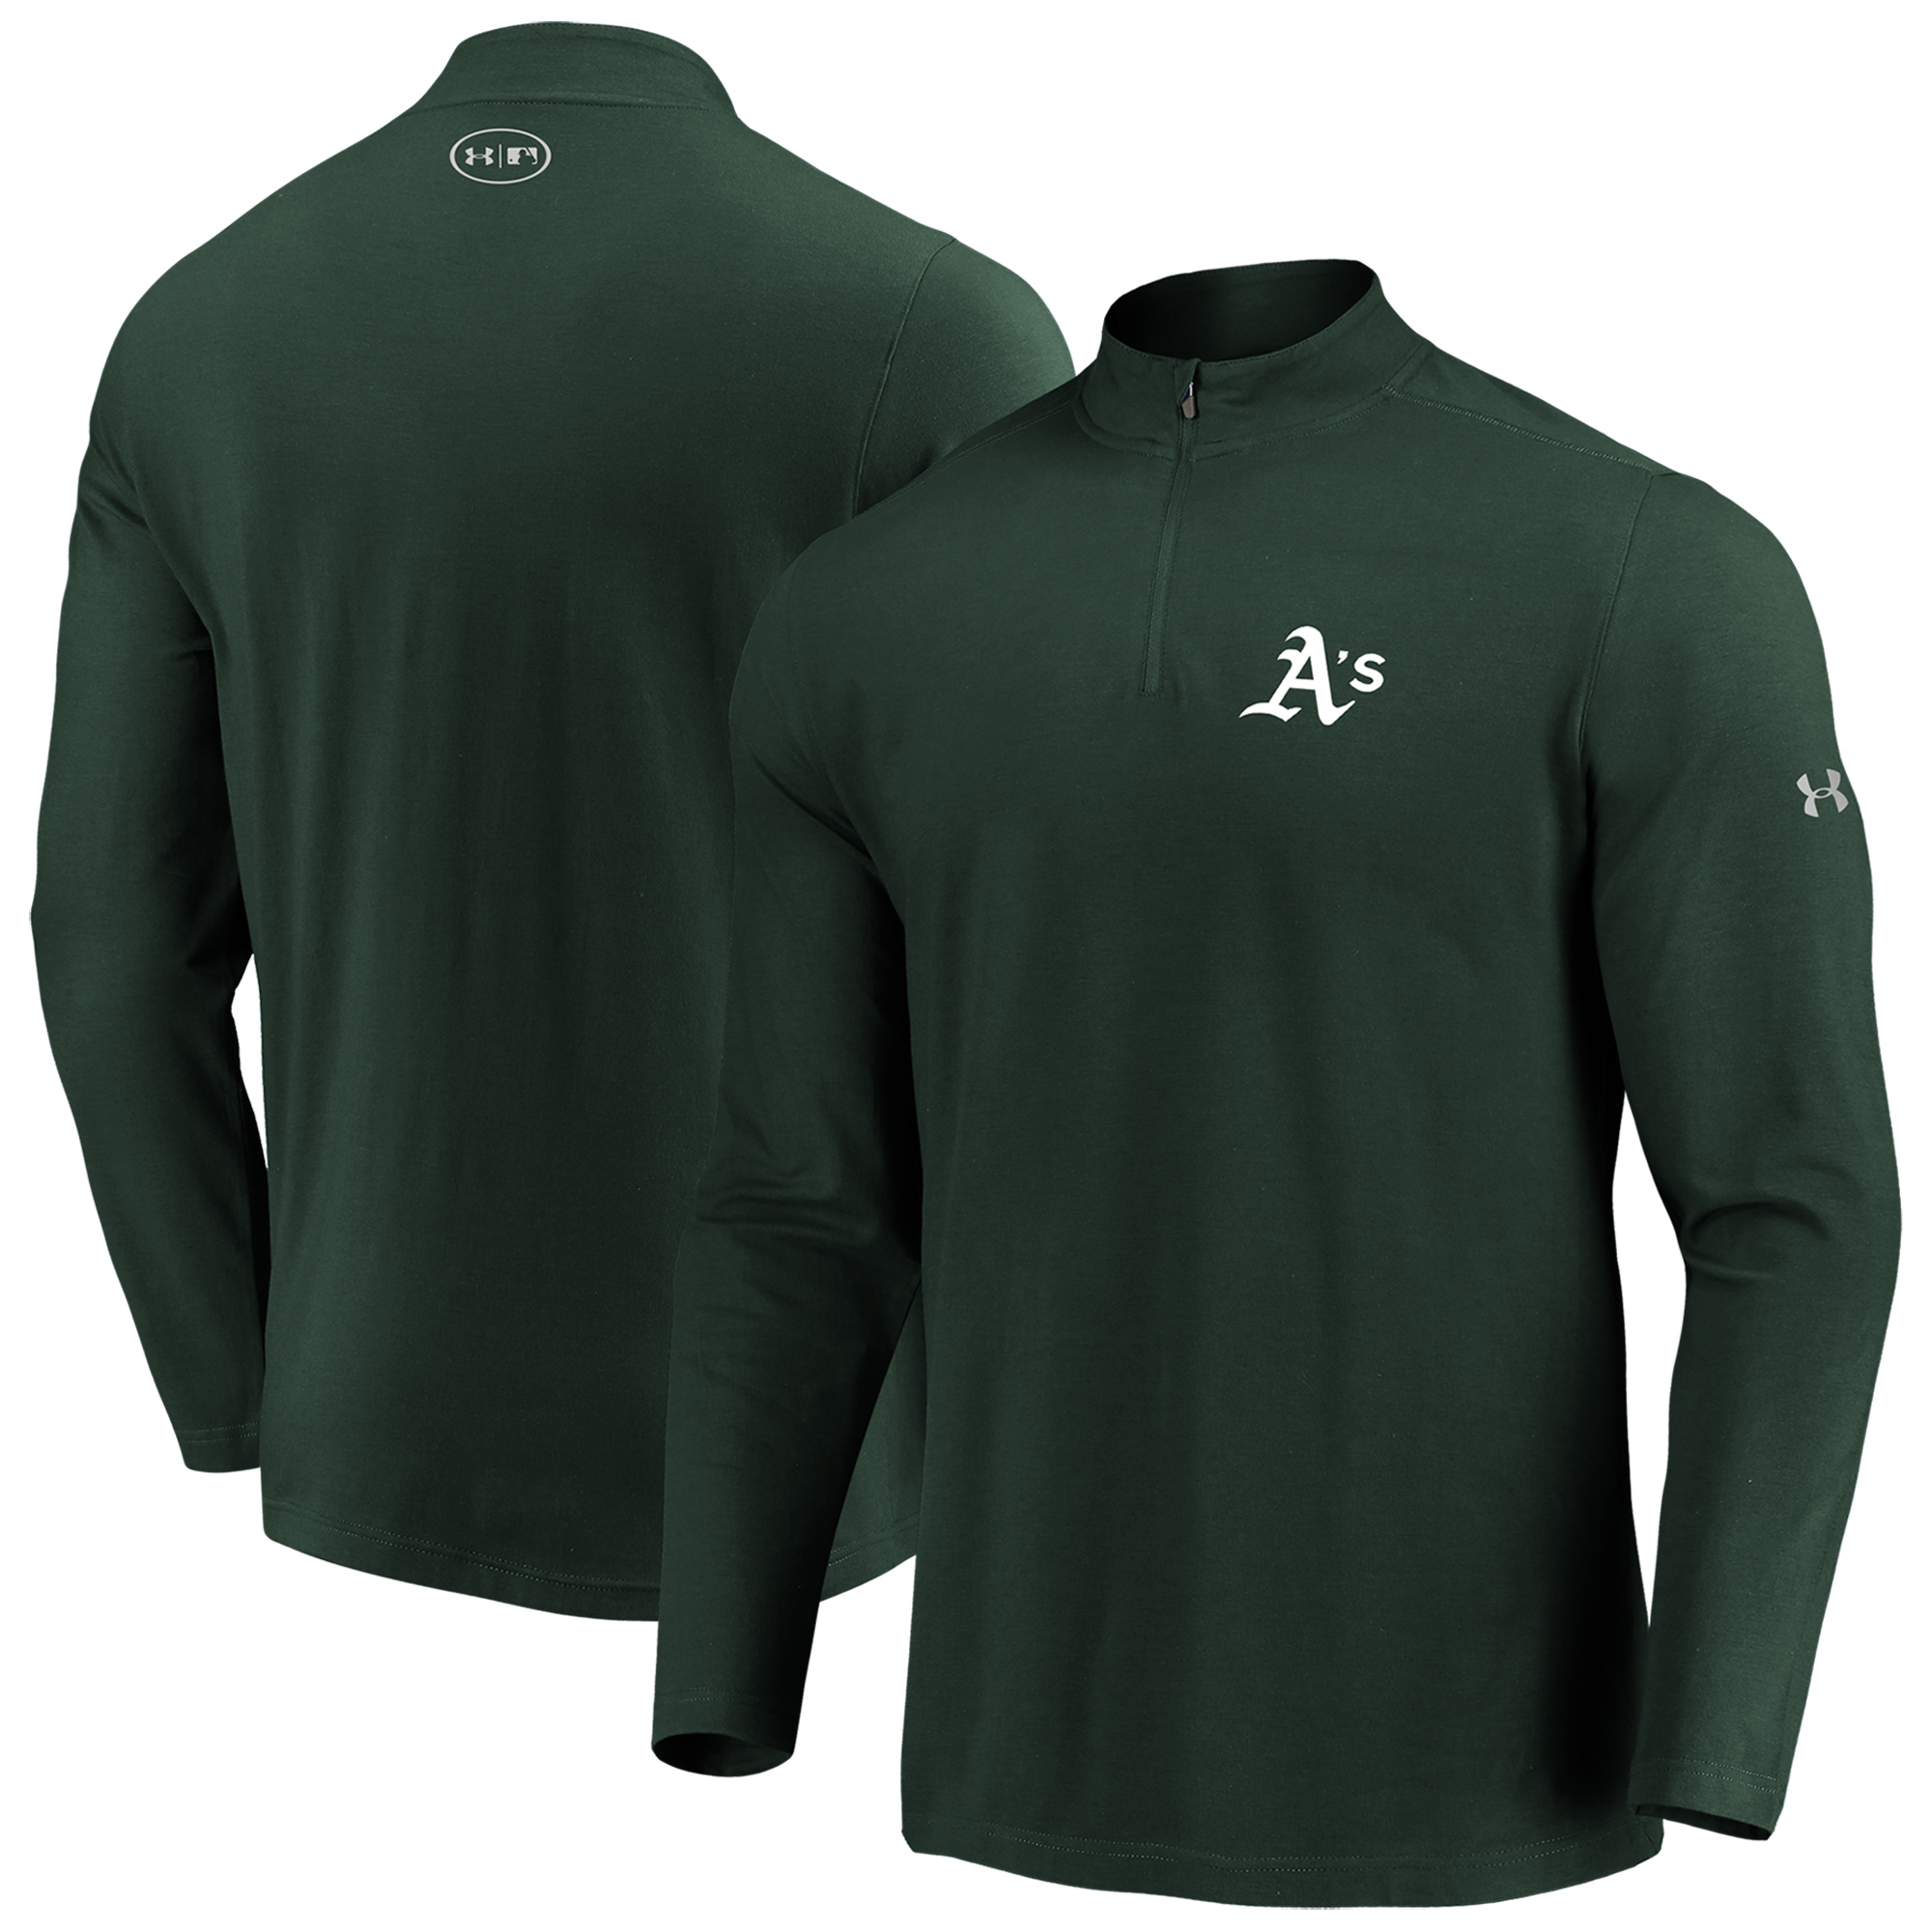 Oakland Athletics Under Armour Passion Performance Tri-Blend Quarter-Zip Pullover Jacket - Green